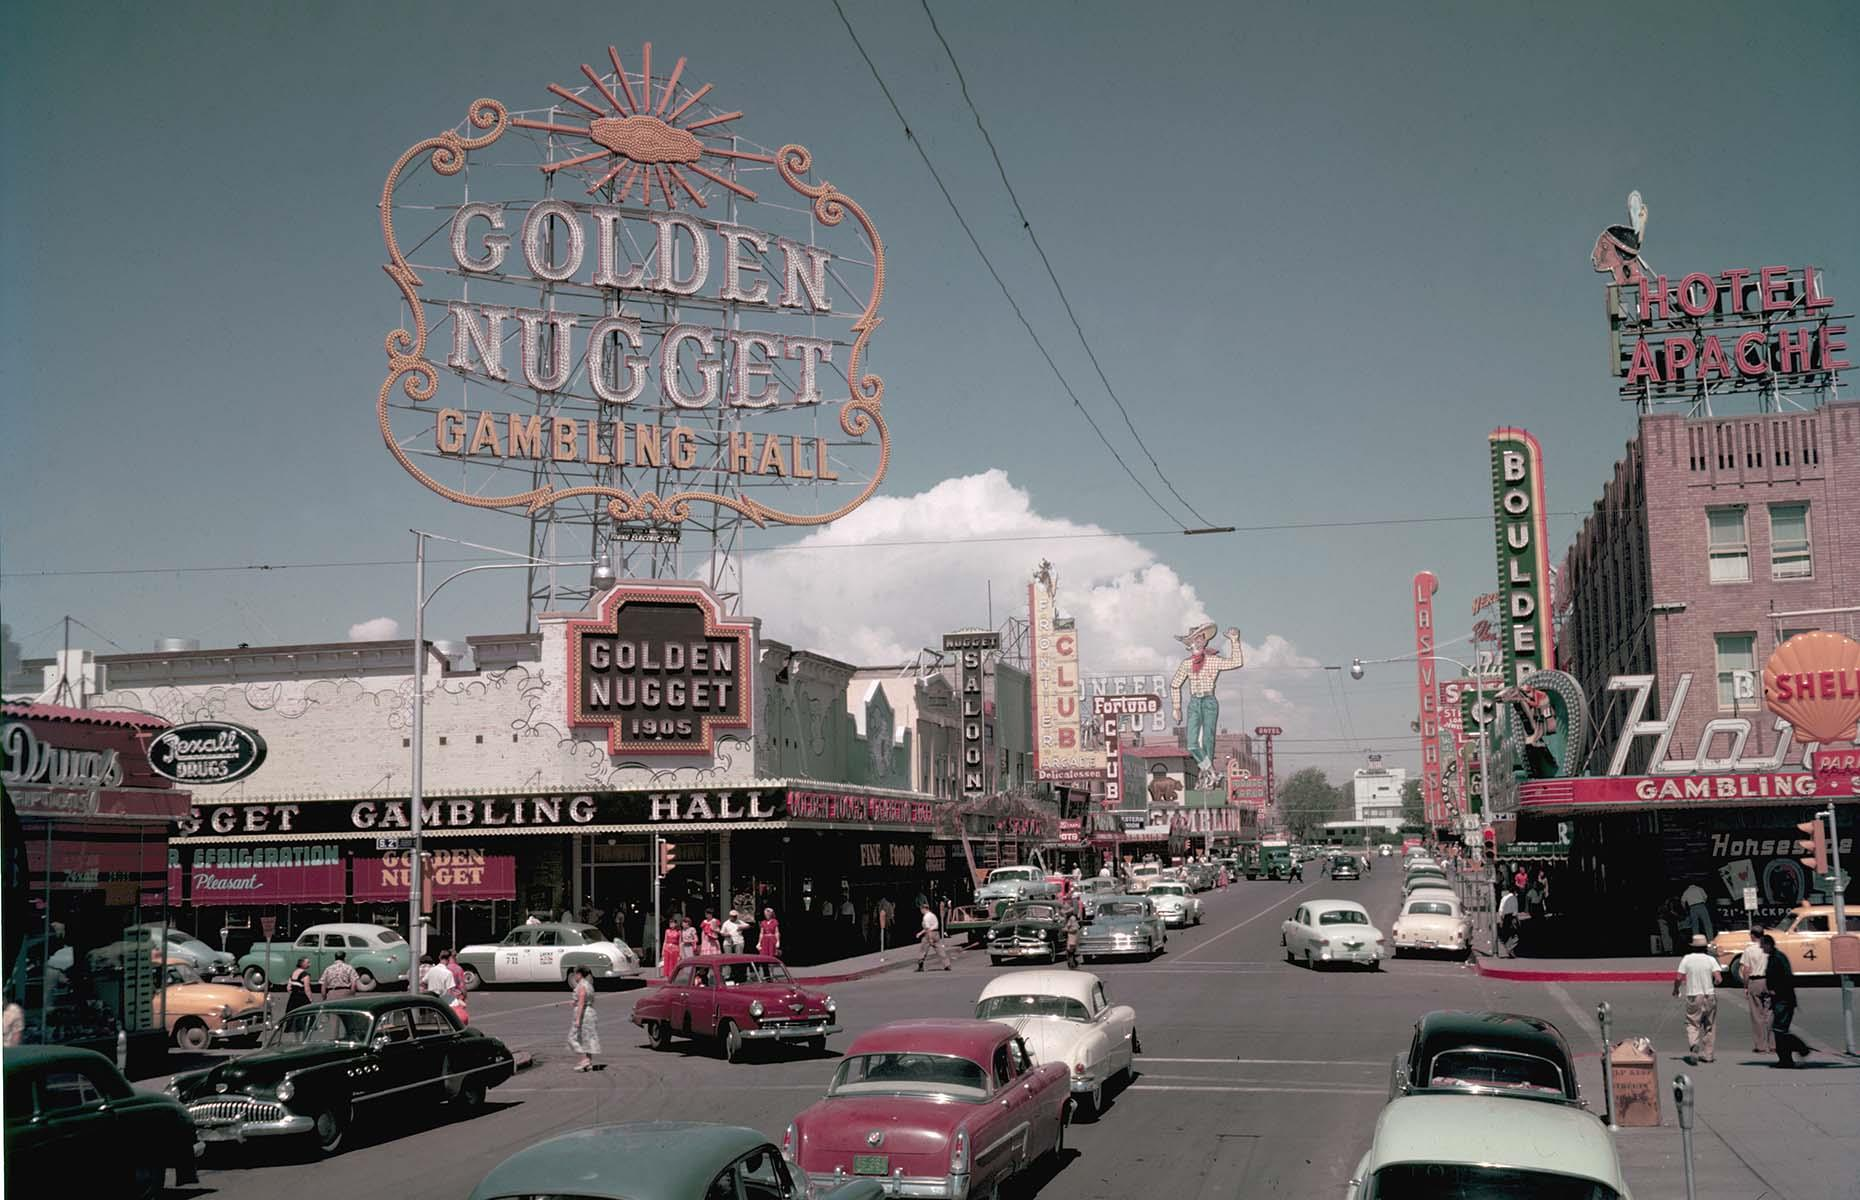 Slide 4 of 27: Once the focal point of Las Vegas, Fremont Street is pictured here in 1953. Back then, Golden Nugget (one of the oldest casinos still open in the city) and its huge sign were a dazzling symbol of Sin City. The area, also home to The Hotel Apache, El Cortez and The Mint, became known as the Glitter Gulch, thanks to all the tall neon signs looming over the narrow street. However, soon after, a development boom kickstarted the rise of the Las Vegas Strip, and today Fremont Street looks a lot different...